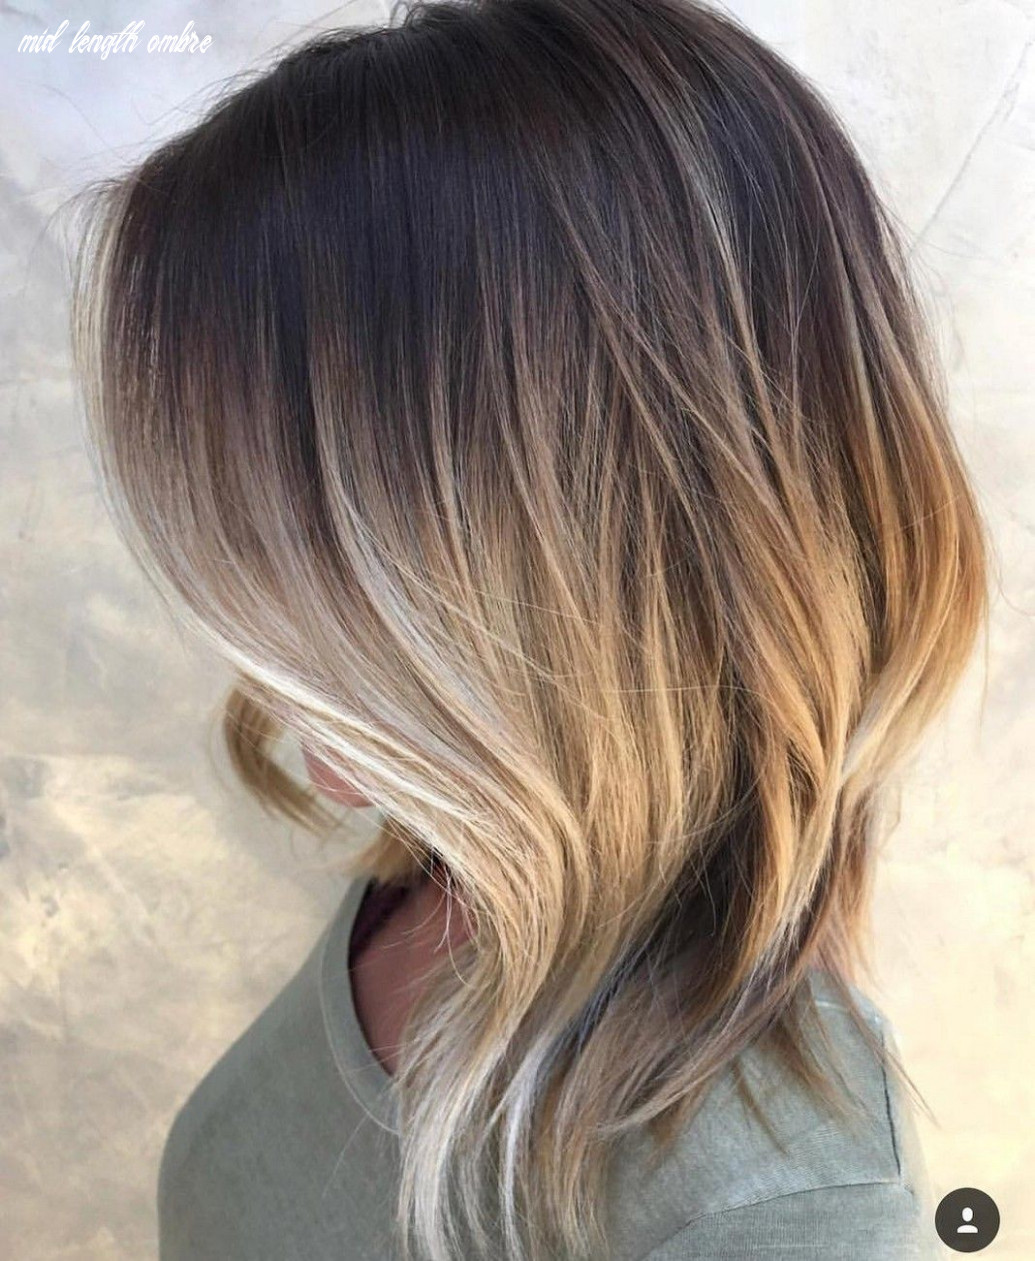 Pin on hair ❤️❤️ mid length ombre